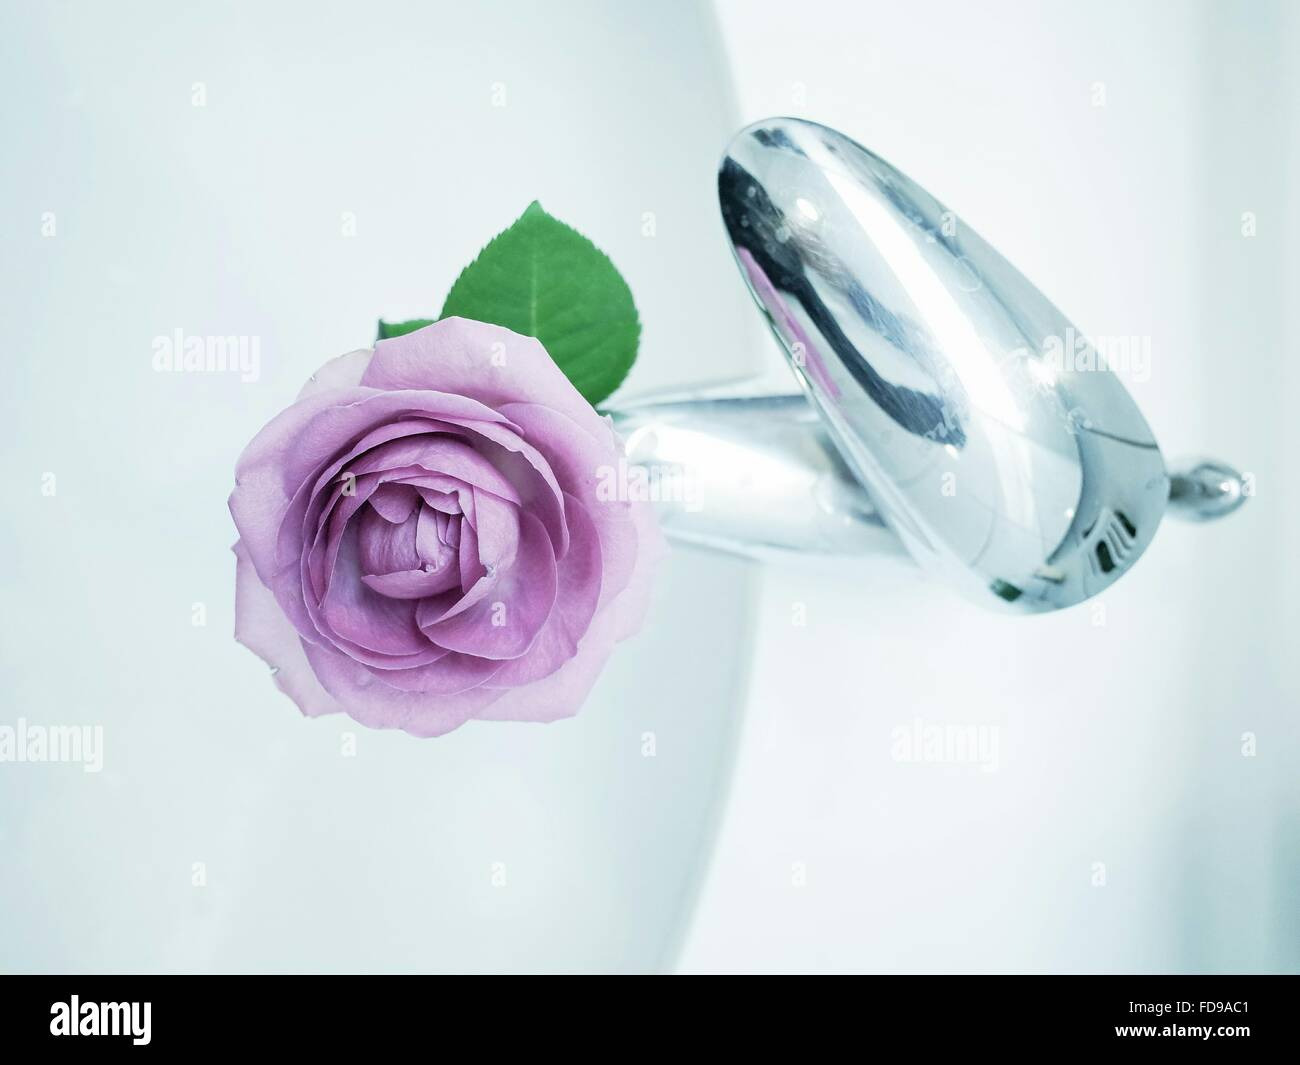 Directly Above Shot Of Purple Rose On Faucet - Stock Image